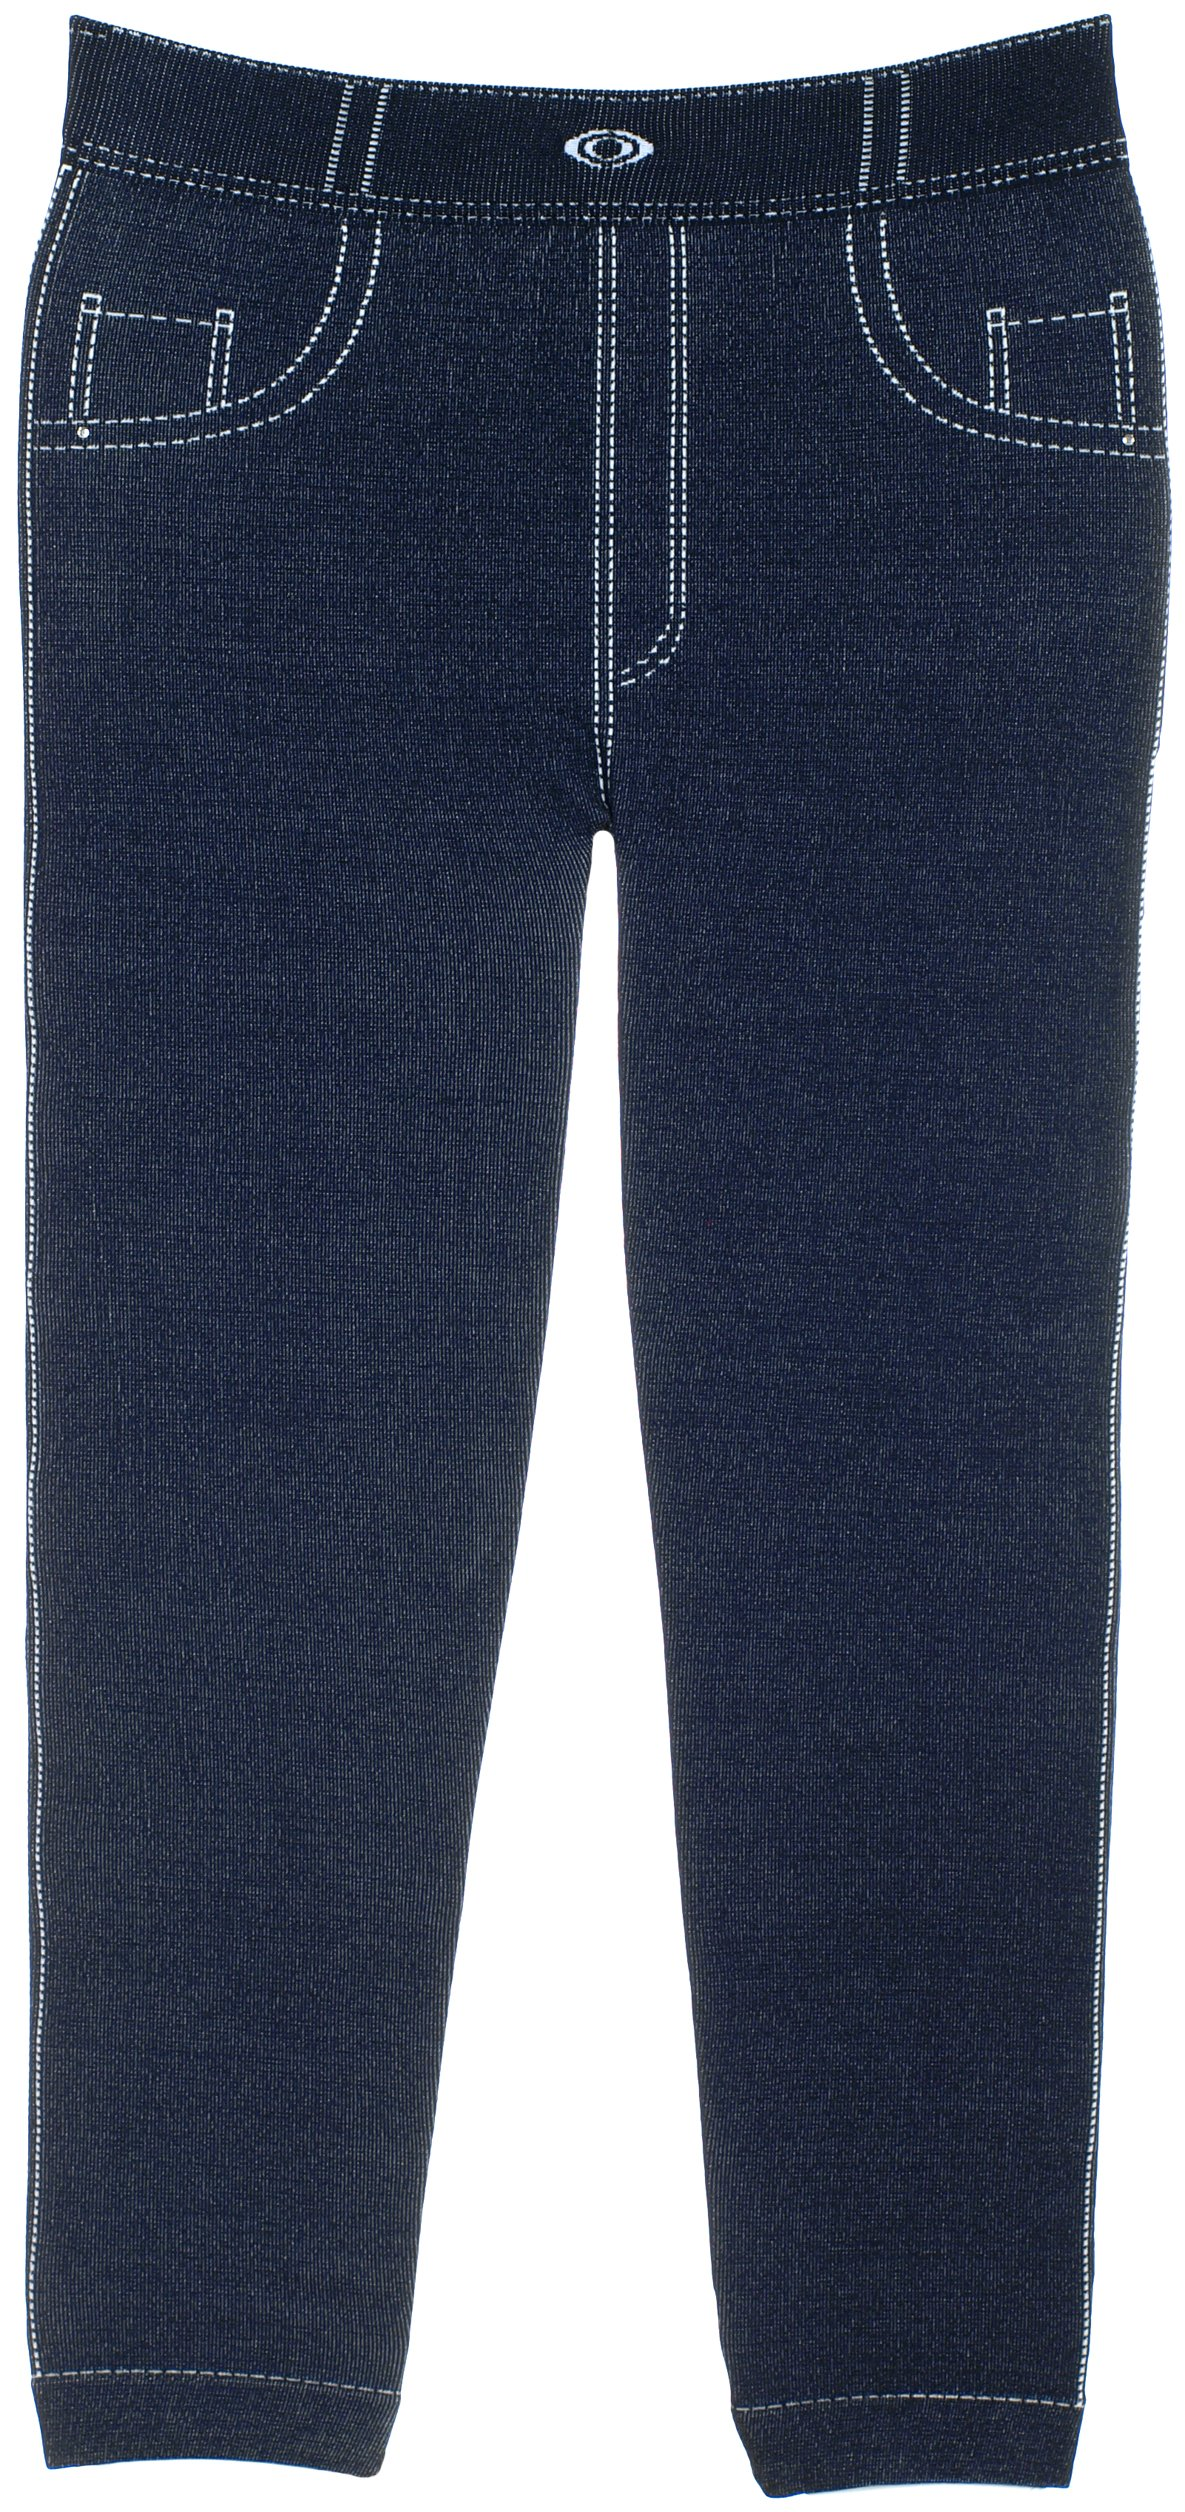 Crush Girl's Jeggings with Sequenced Designs and Fun Prints 14 Great Styles (2T-4T, 22588 Navy)